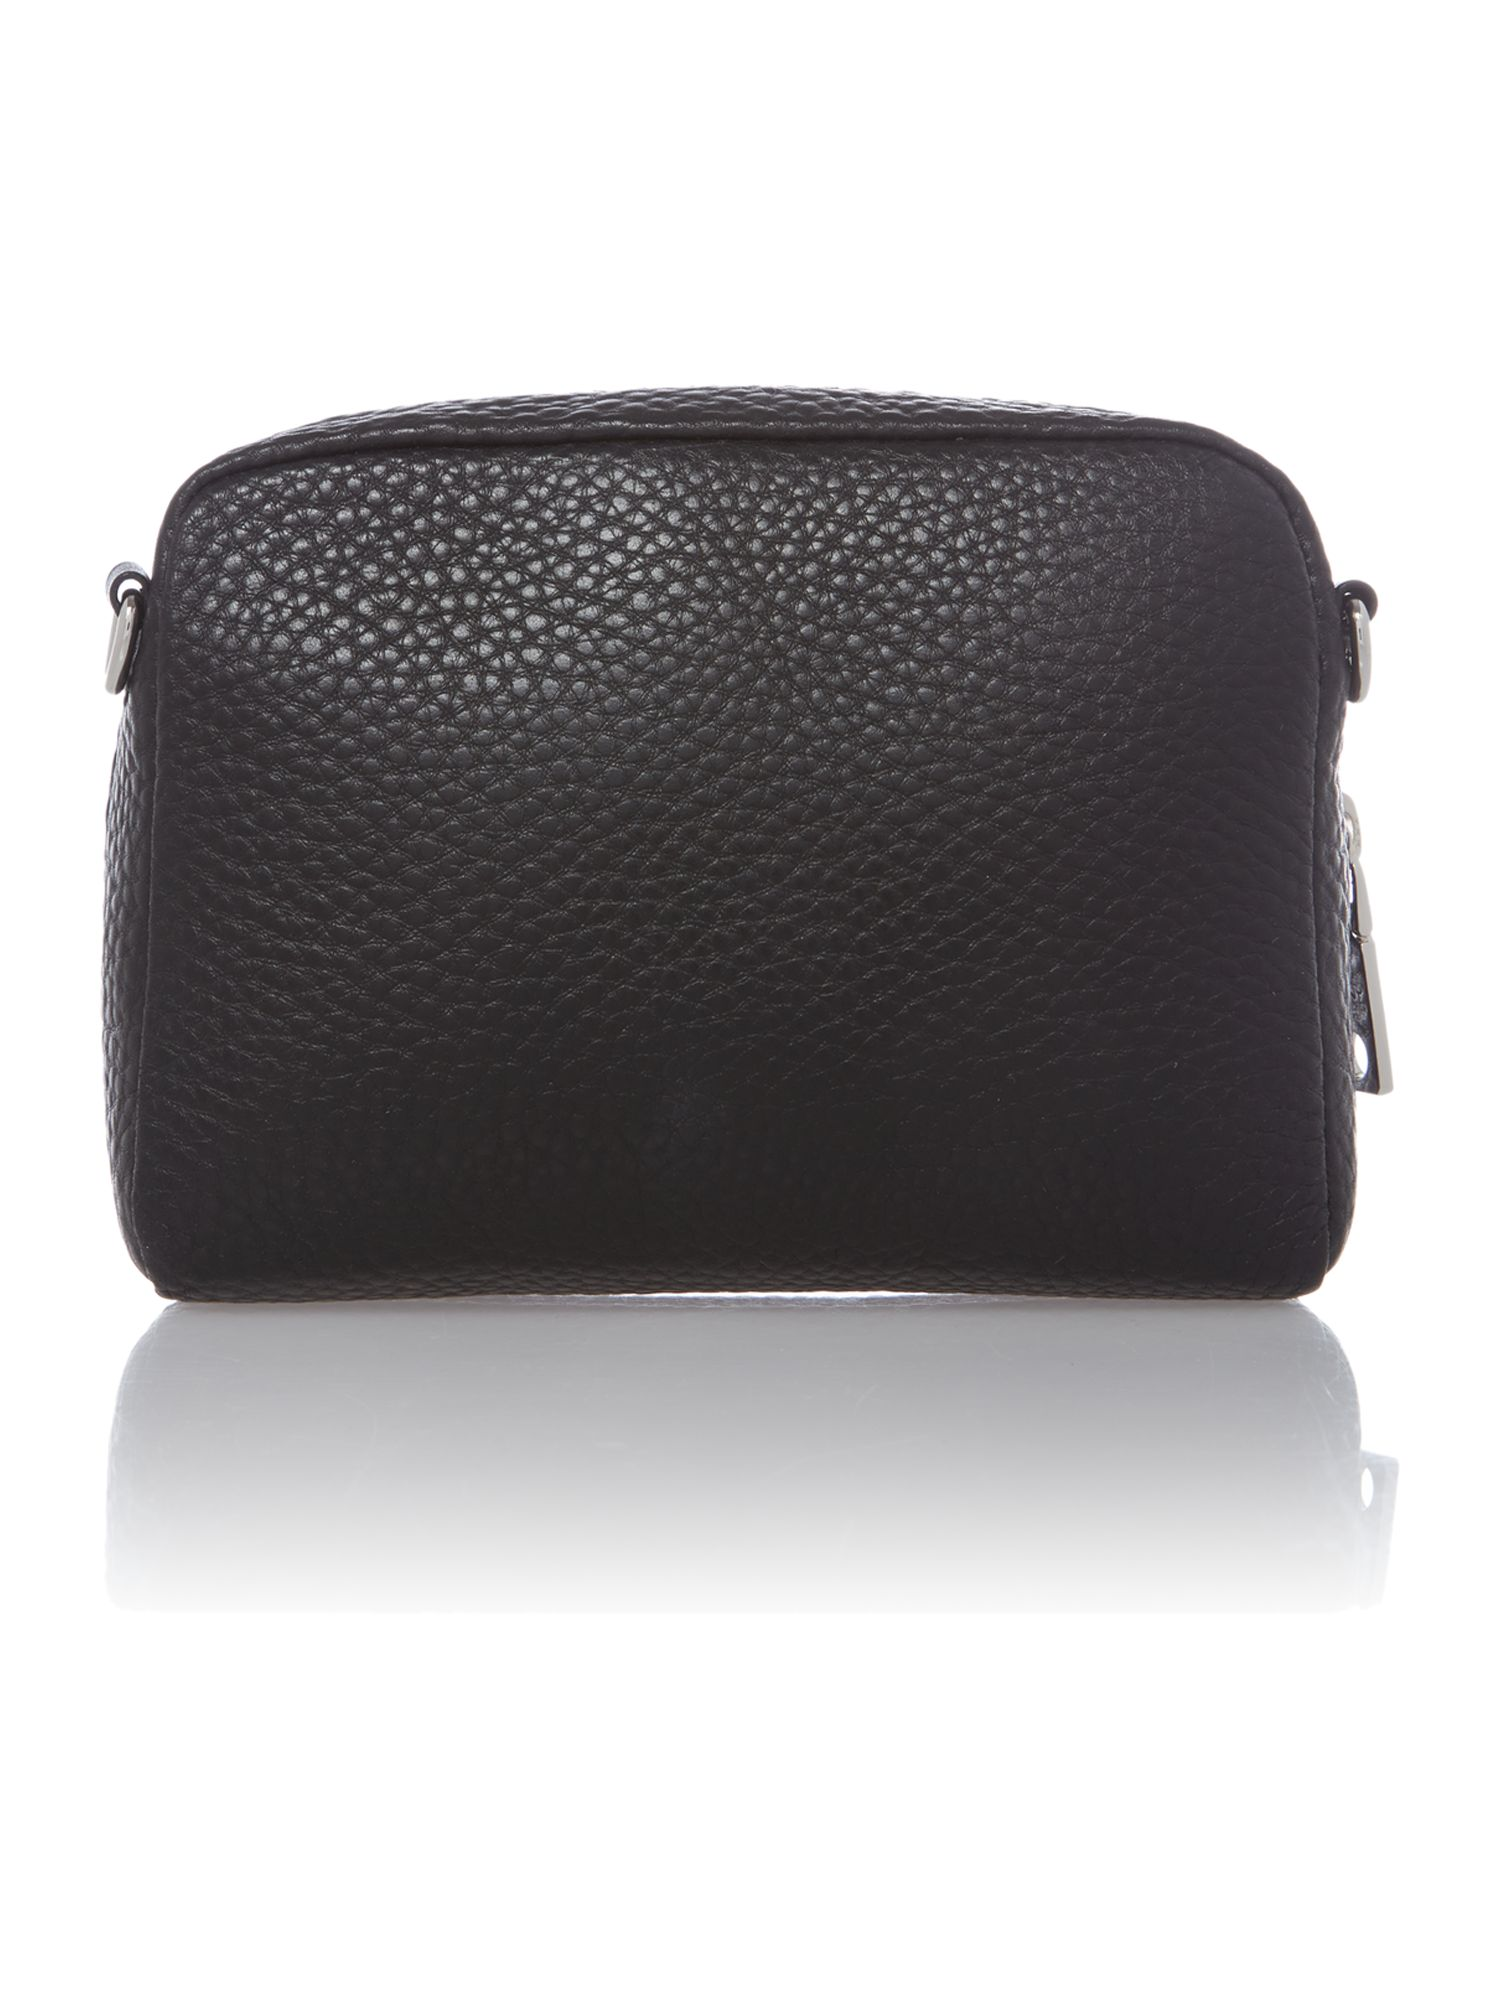 Tribeca soft black small tote bag